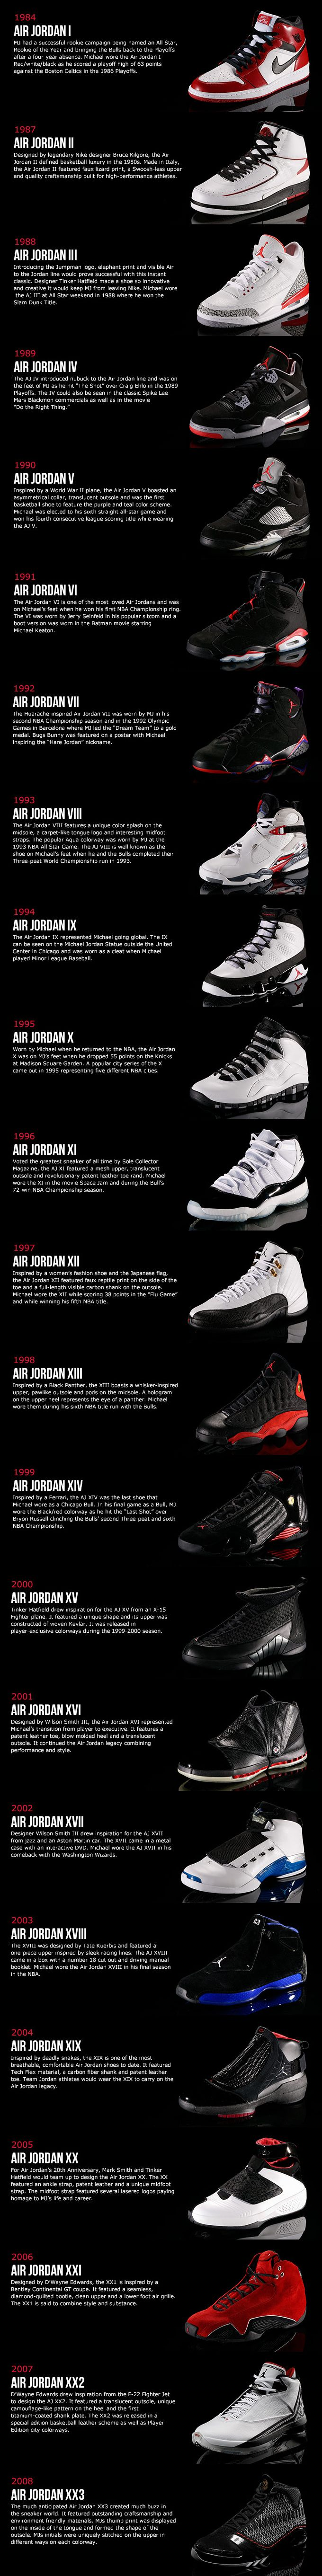 History of Air Jordan Shoes #airjordans #sneakerhead #nike #basketball #michaeljordan